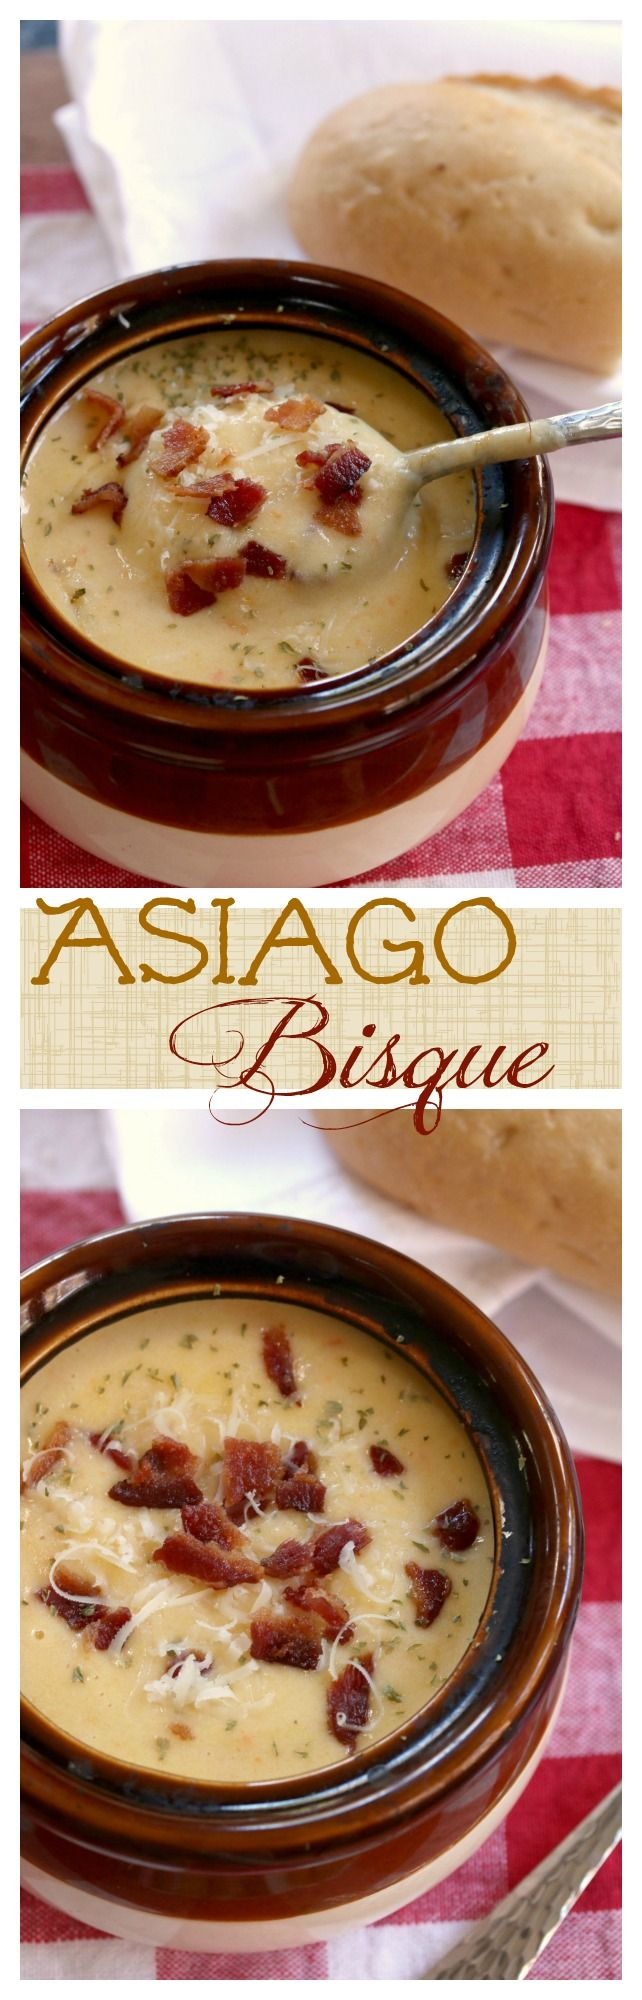 This thick & creamy Asiago bisque is topped with crunchy bacon and a touch of parsley. It's a simple, yet savory, must-try recipe!